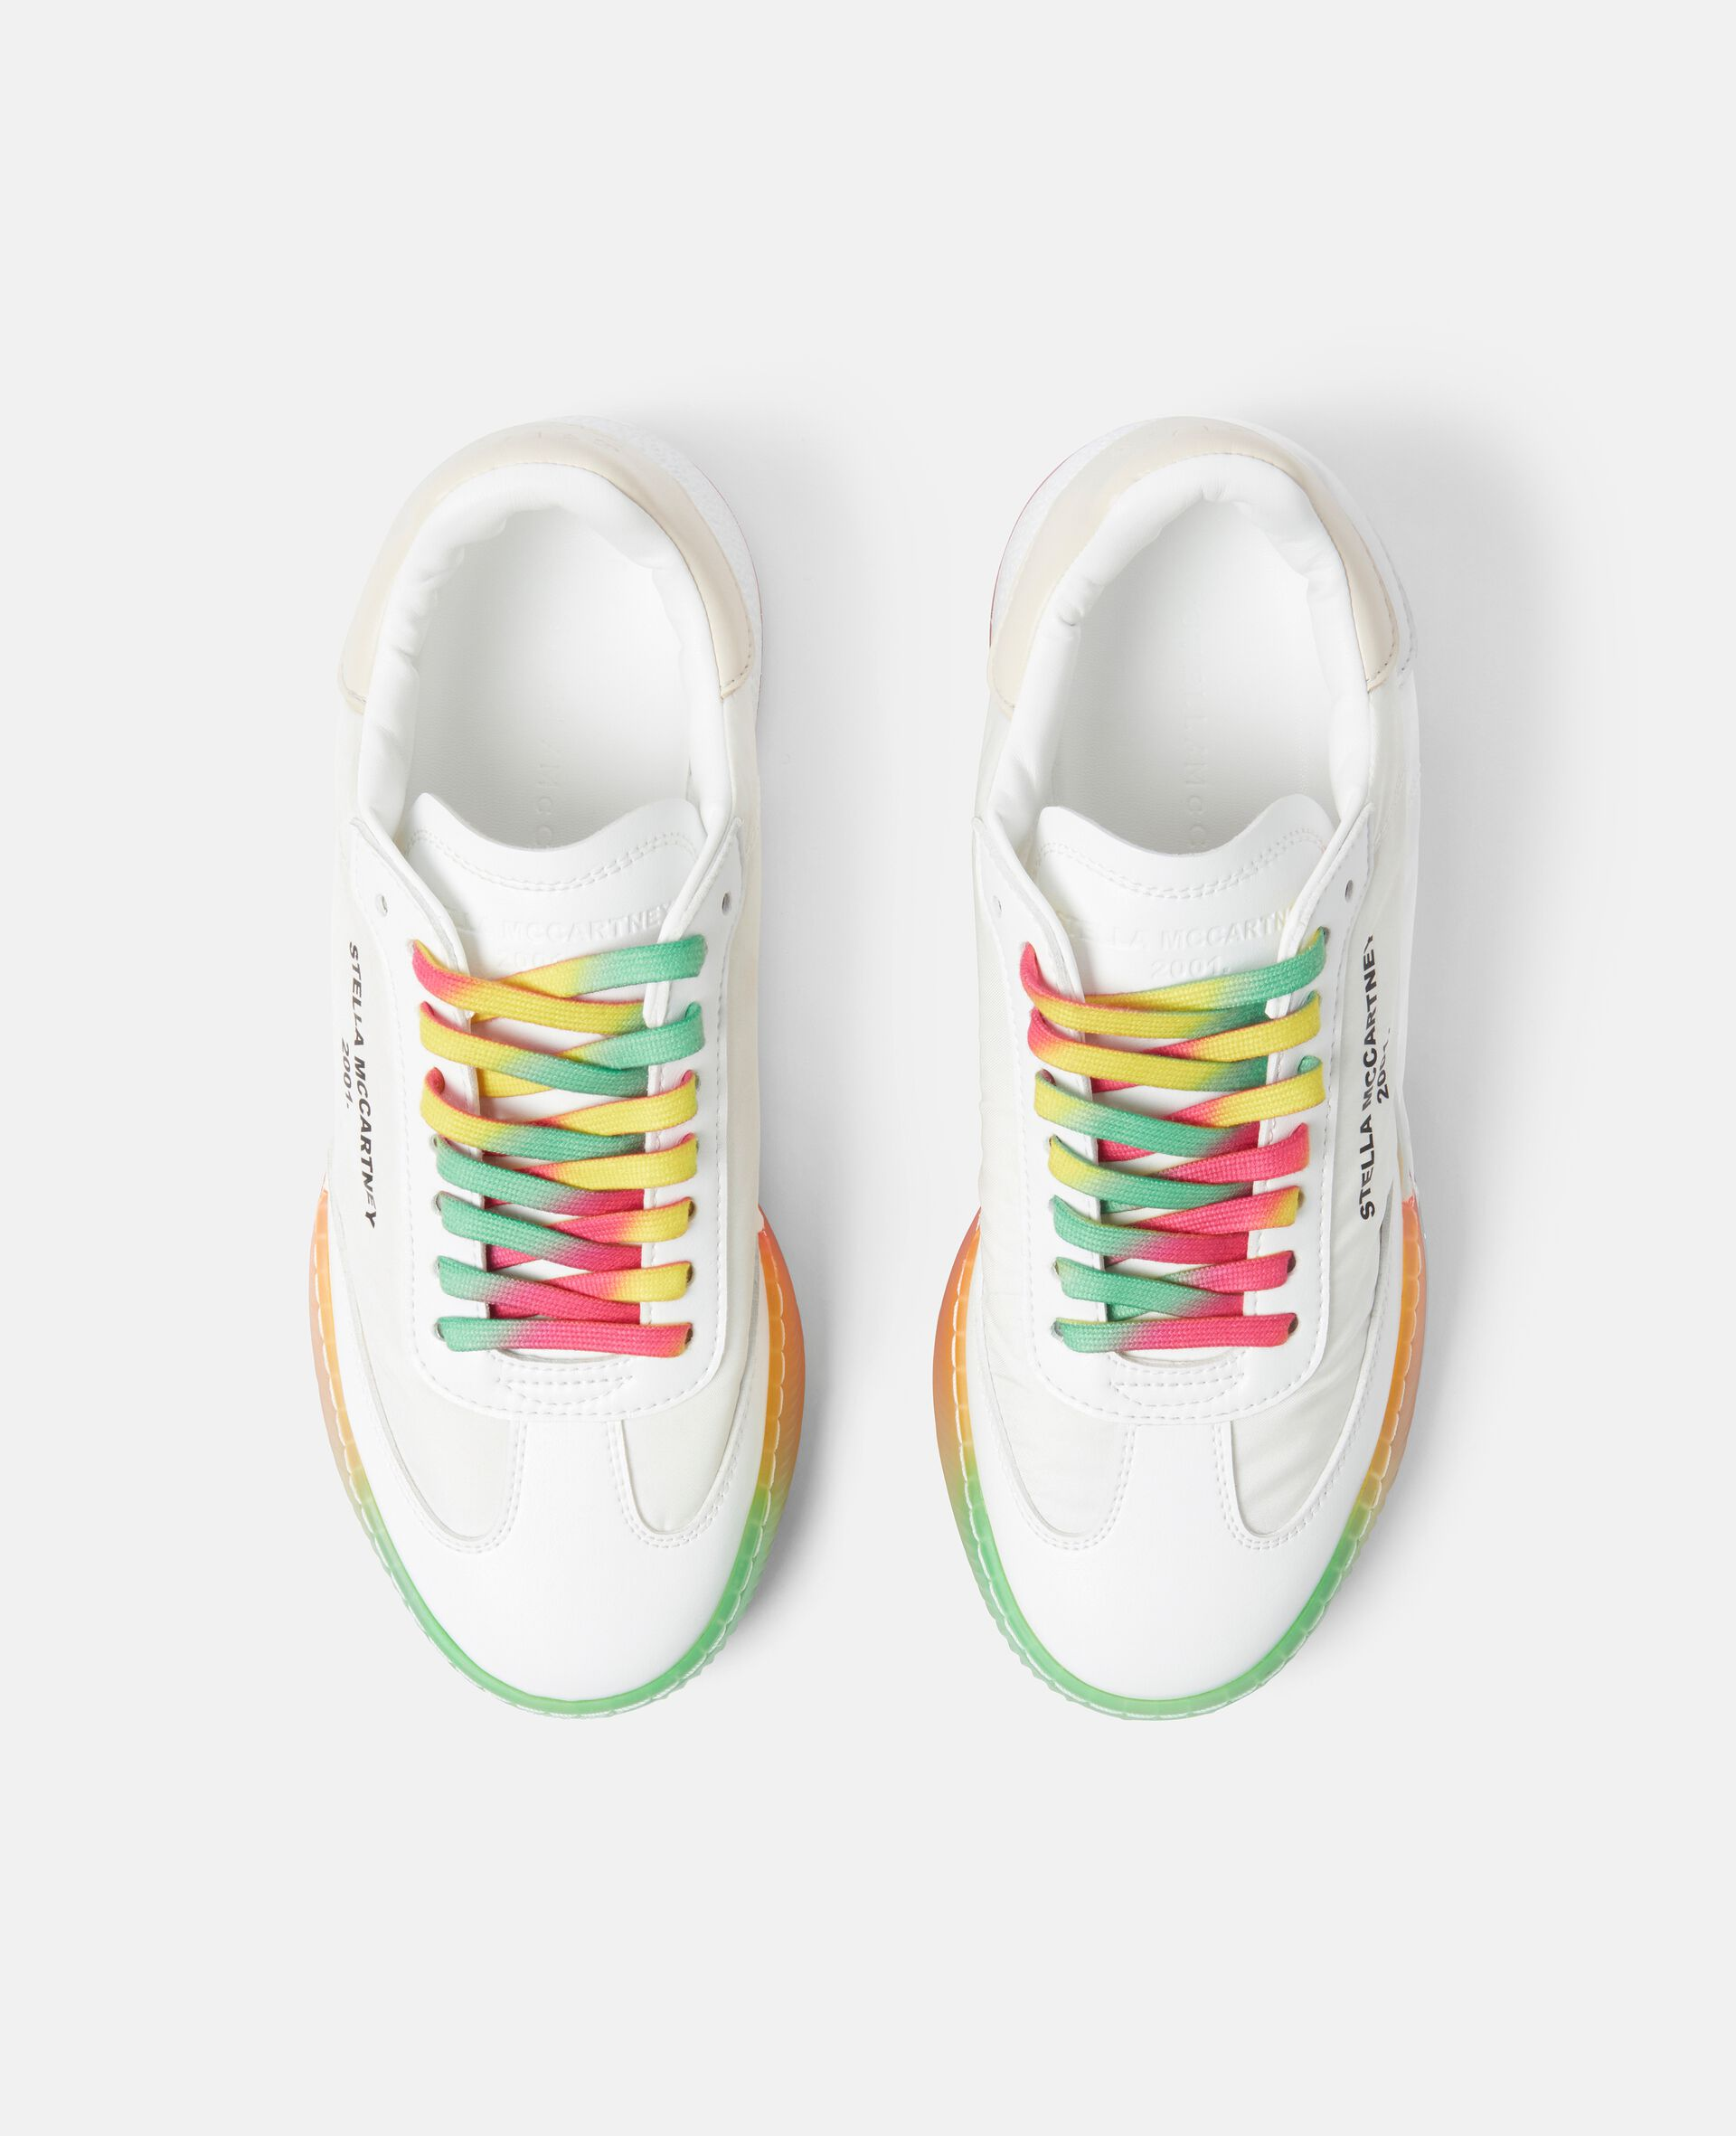 Loop Lace-up Sneakers-White-large image number 3